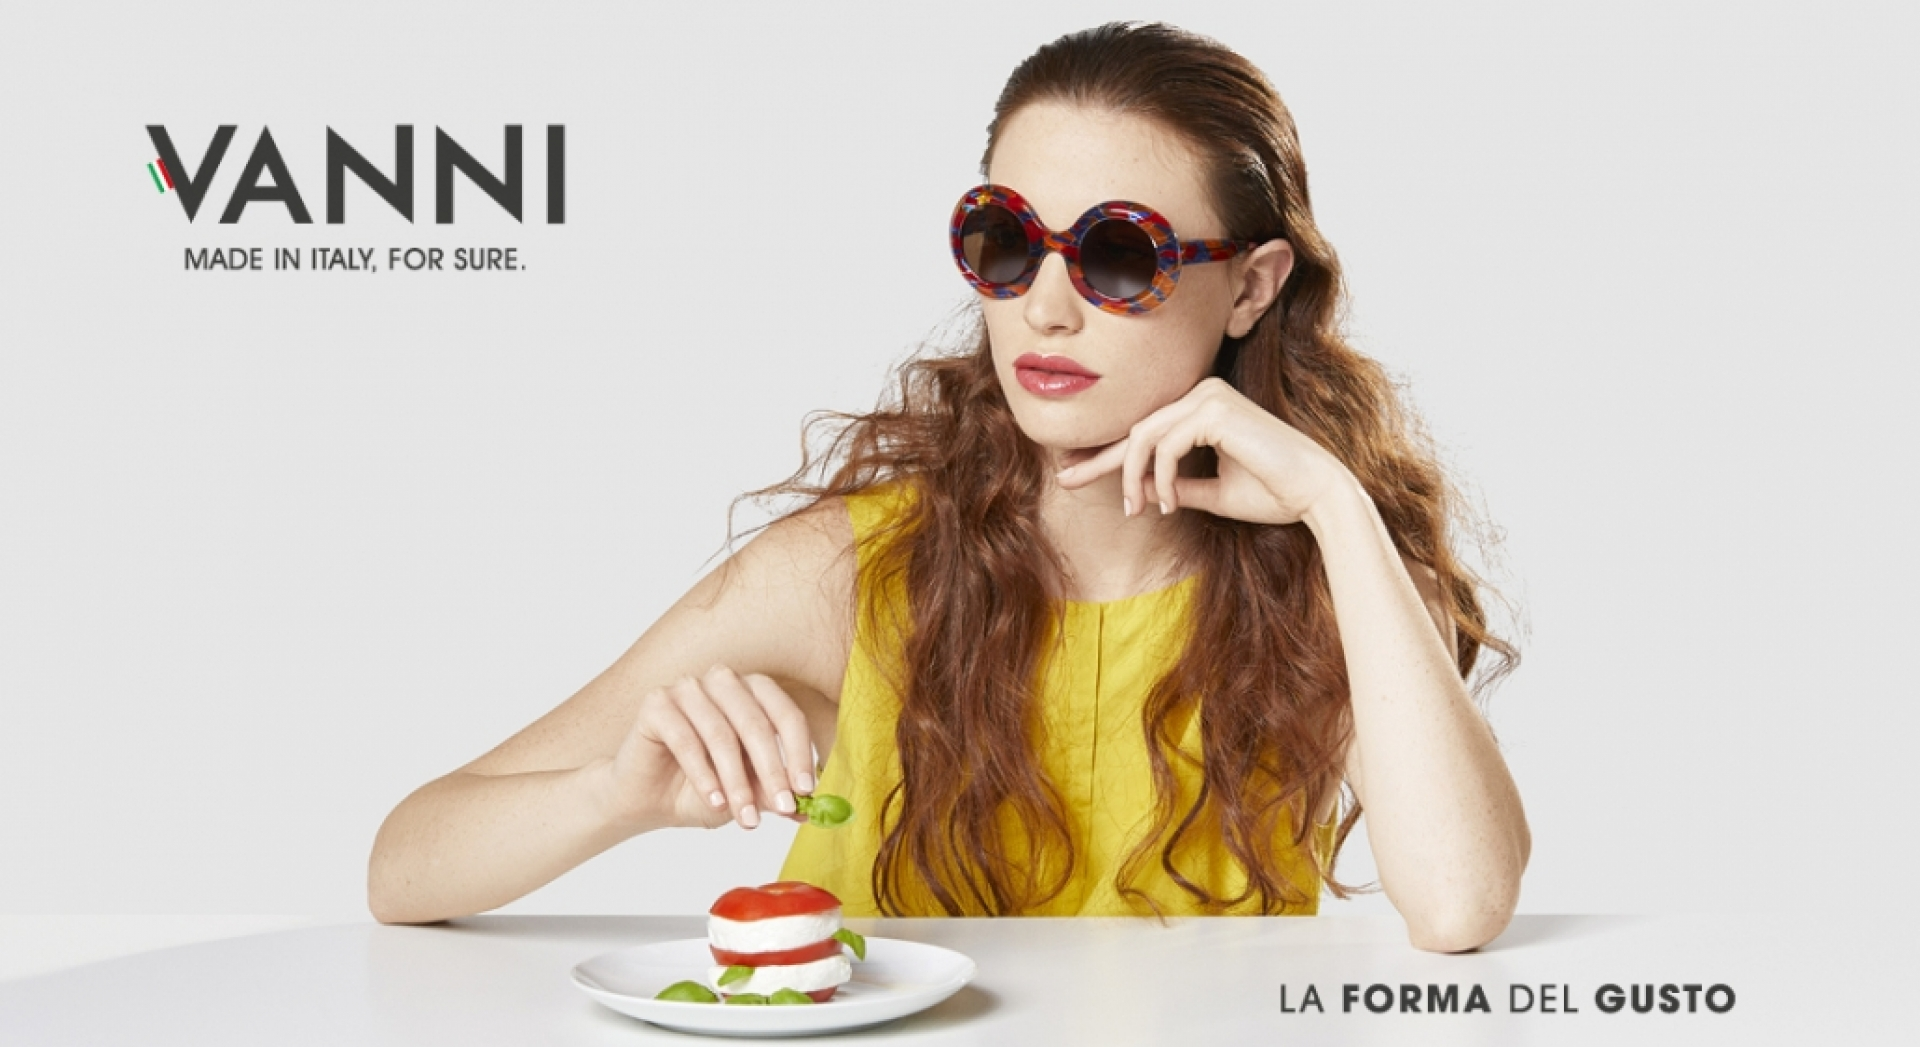 VANNI SUMMERTIME: SUNGLASSES THAT GET NOTICED